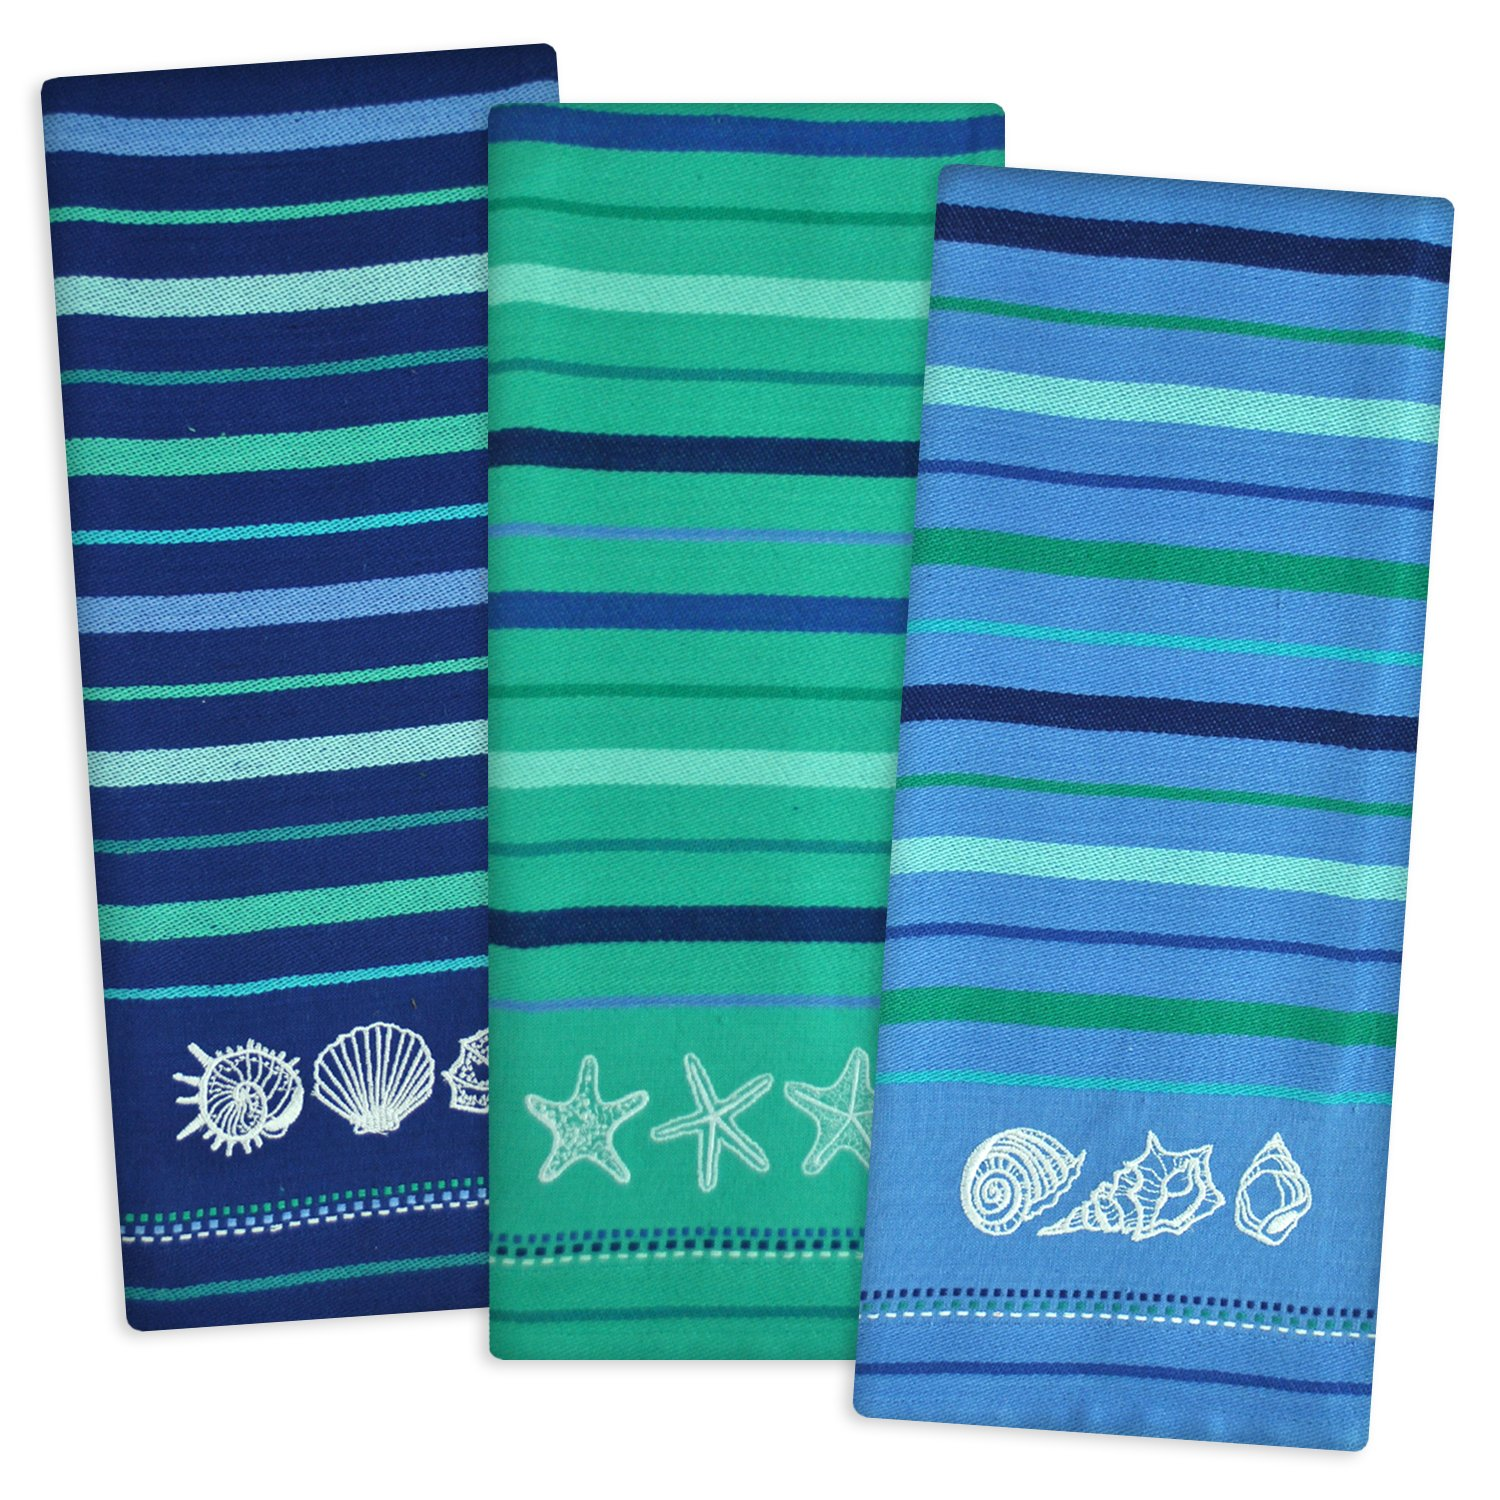 DII Cotton Embroidered Blue Sea Dish Towels, 18 x 28'' Set of 3, Decorative Oversized Kitchen Towels for Everyday Cooking and Baking